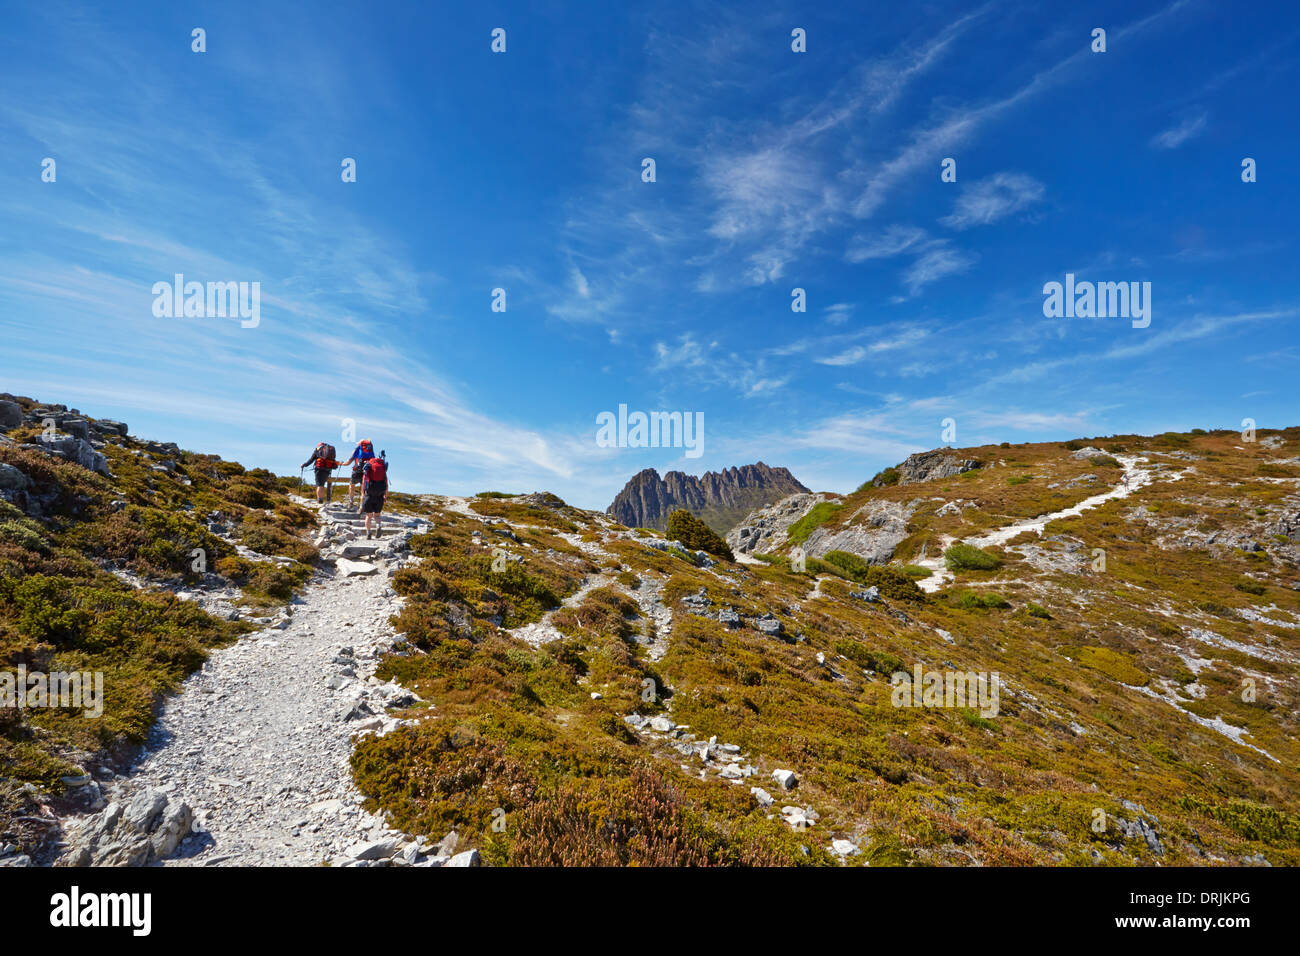 Hikers reaching the summit of a ridge with Cradle Mountain in background (Tasmania) - Stock Image